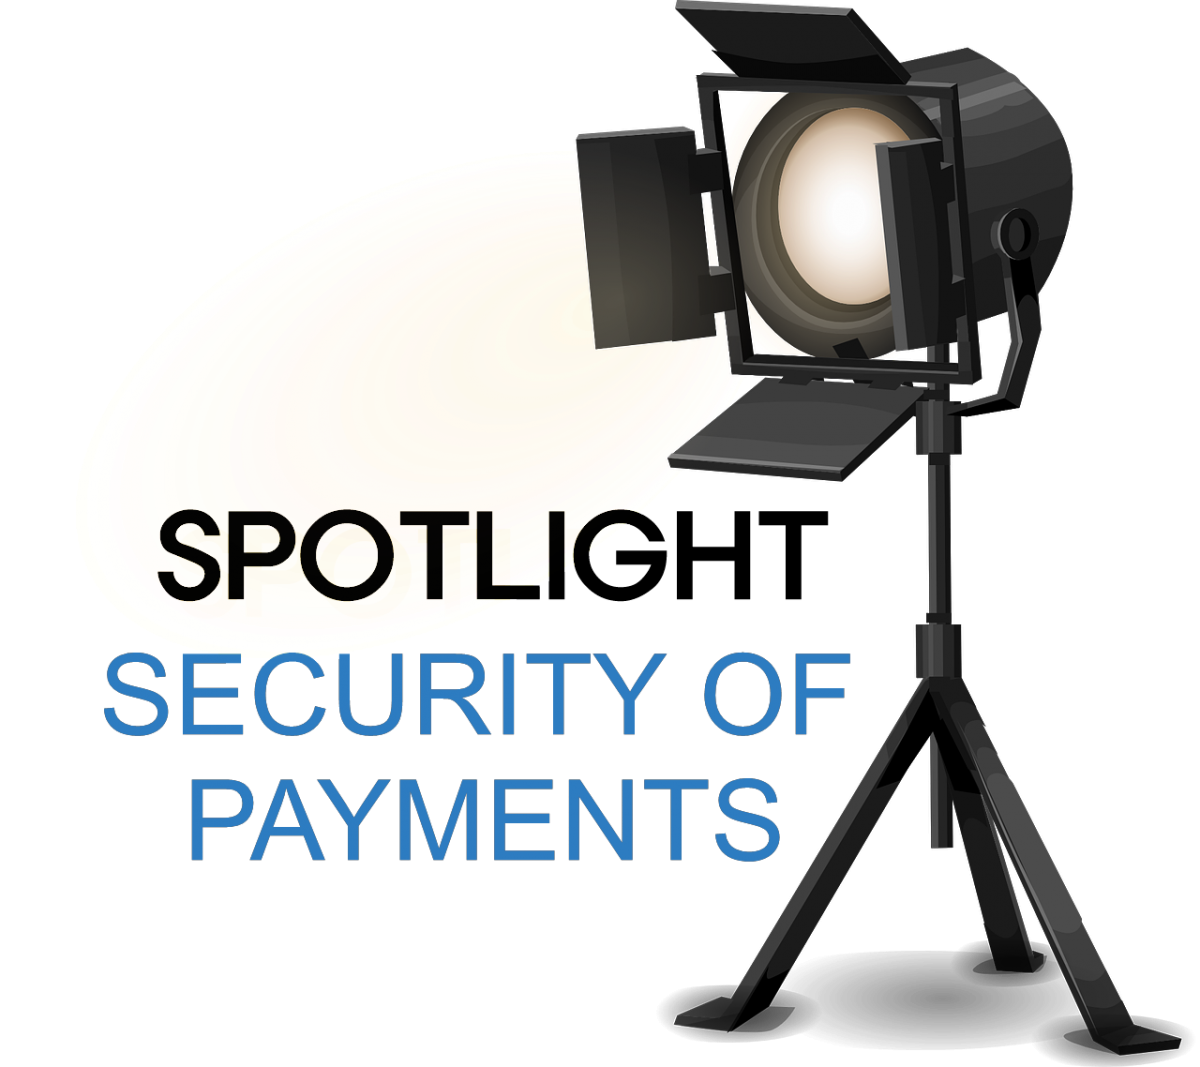 Spotlight Security of Payments